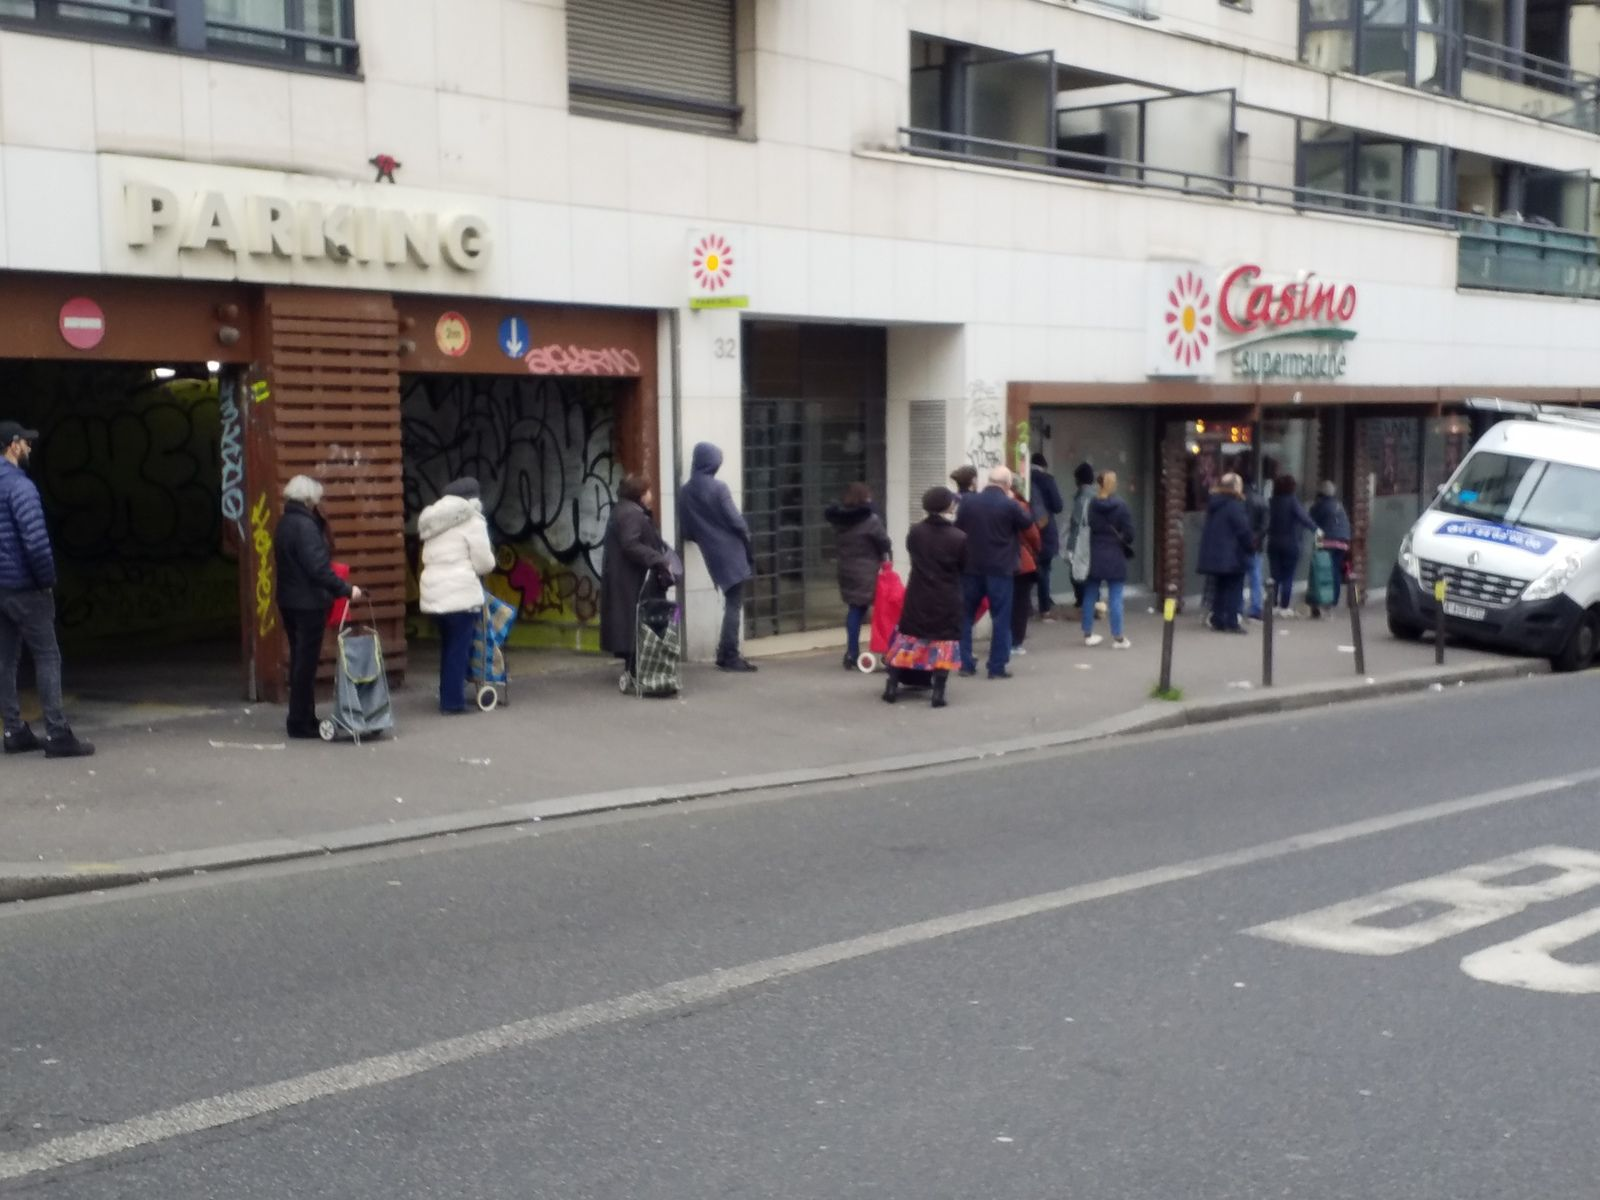 Queue devant  Casino r de Ménilmontant, Paris 20°, 27/03/20